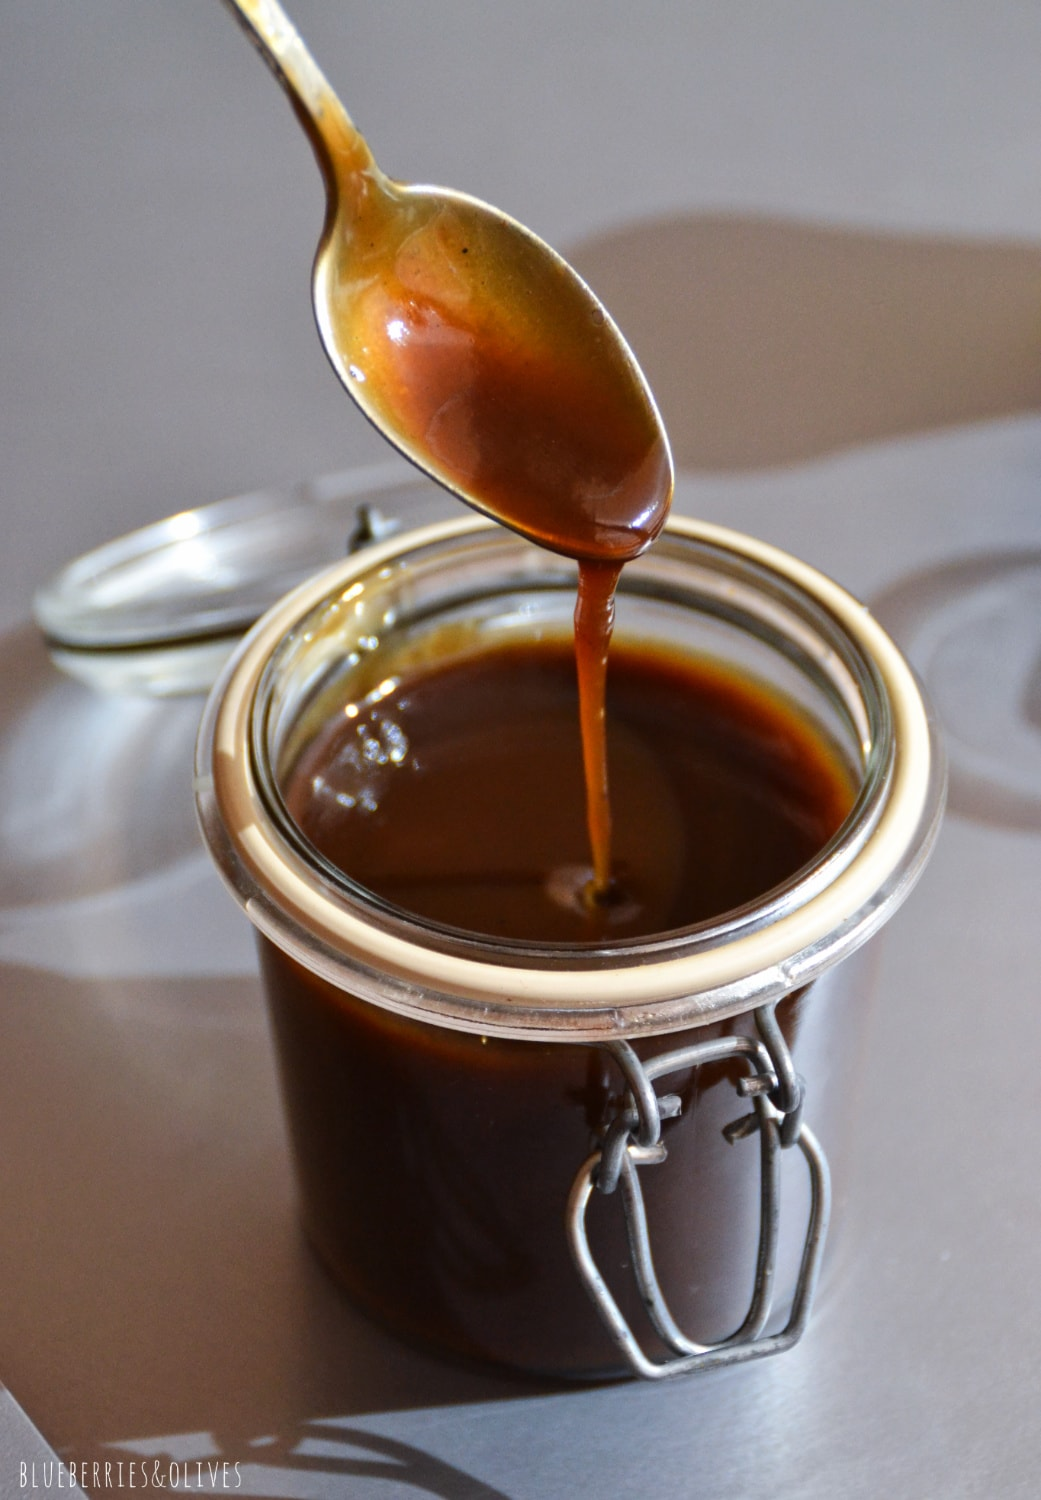 SALTED CARAMEL DRIZZLING FROM SPOON TO JAR